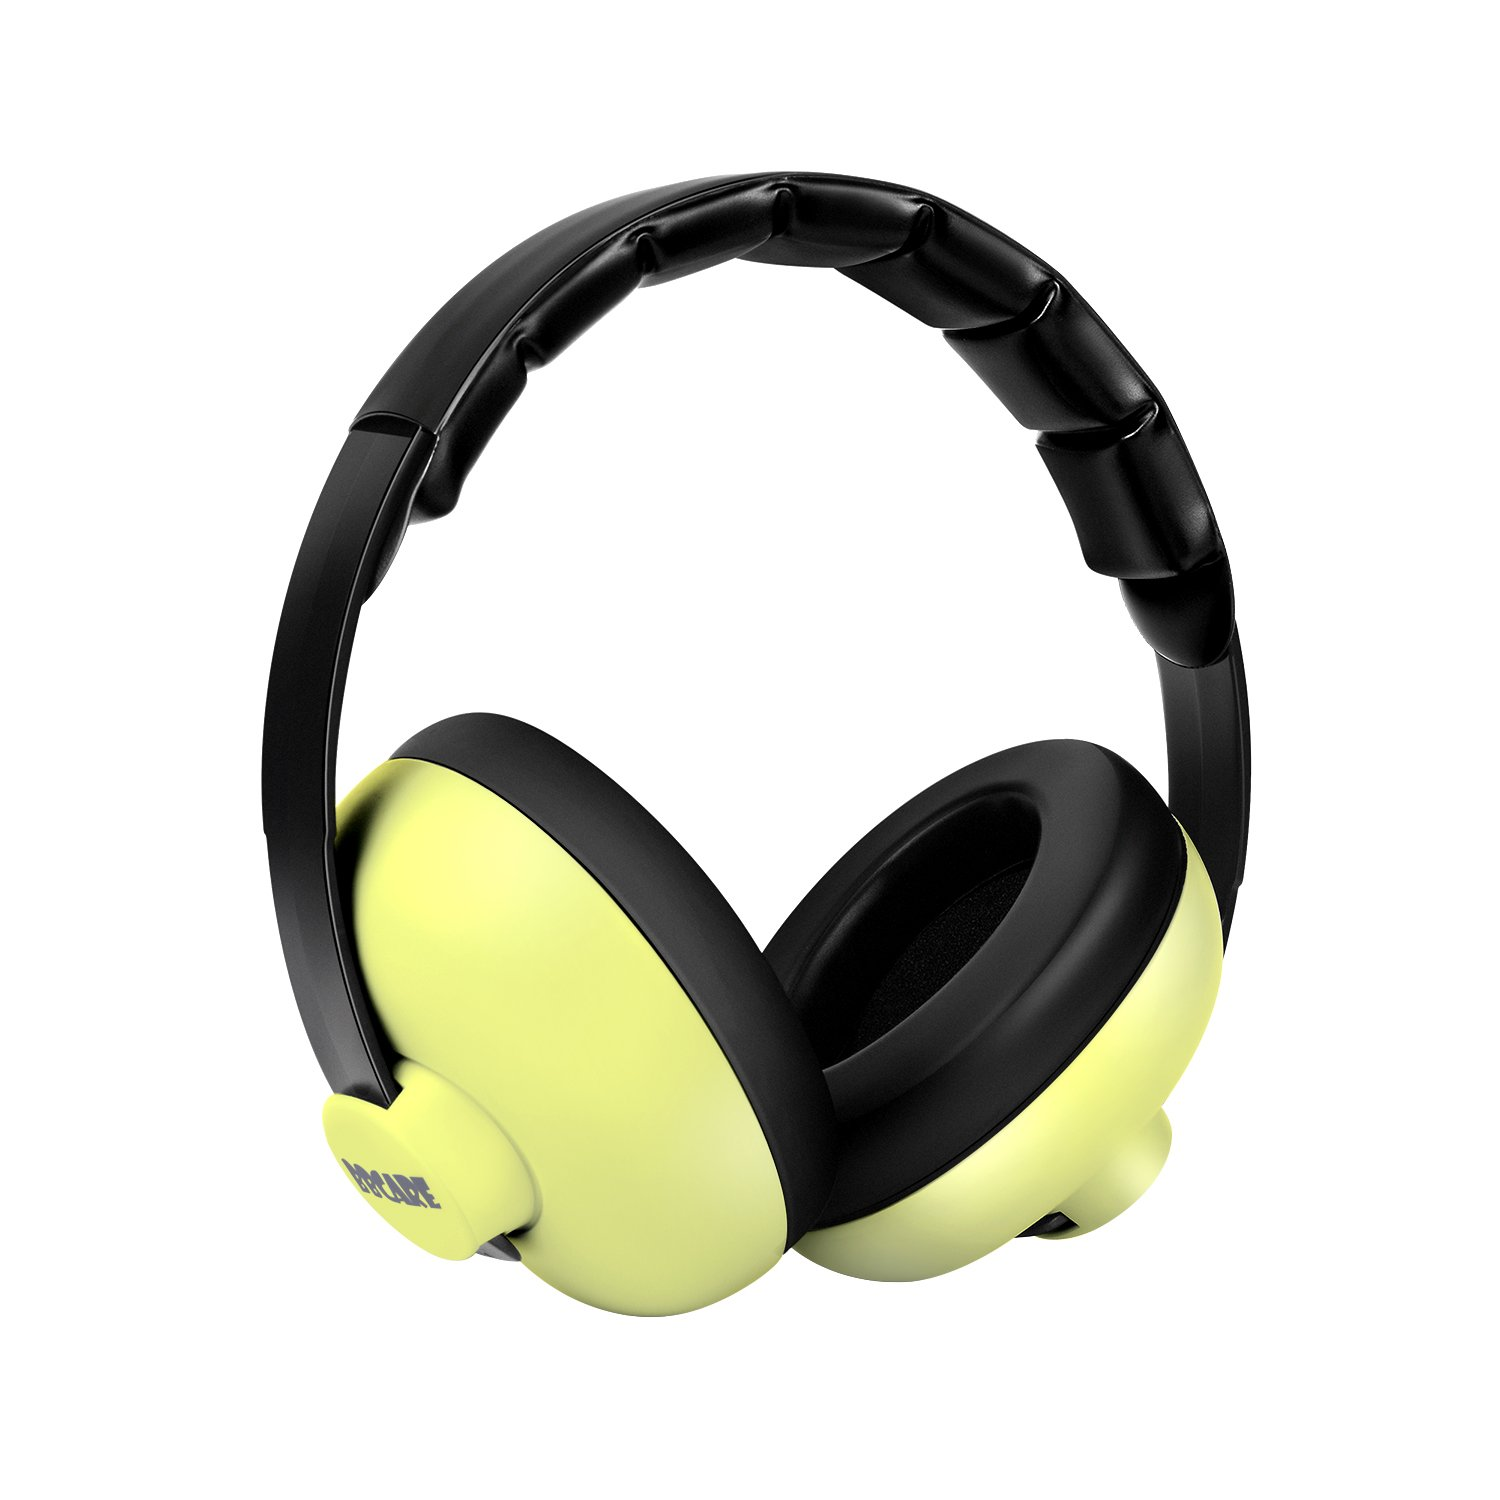 BBcare Baby Ear Protection Noise Cancelling HeadPhones for Babies for 3 Months to 2 Years-Green